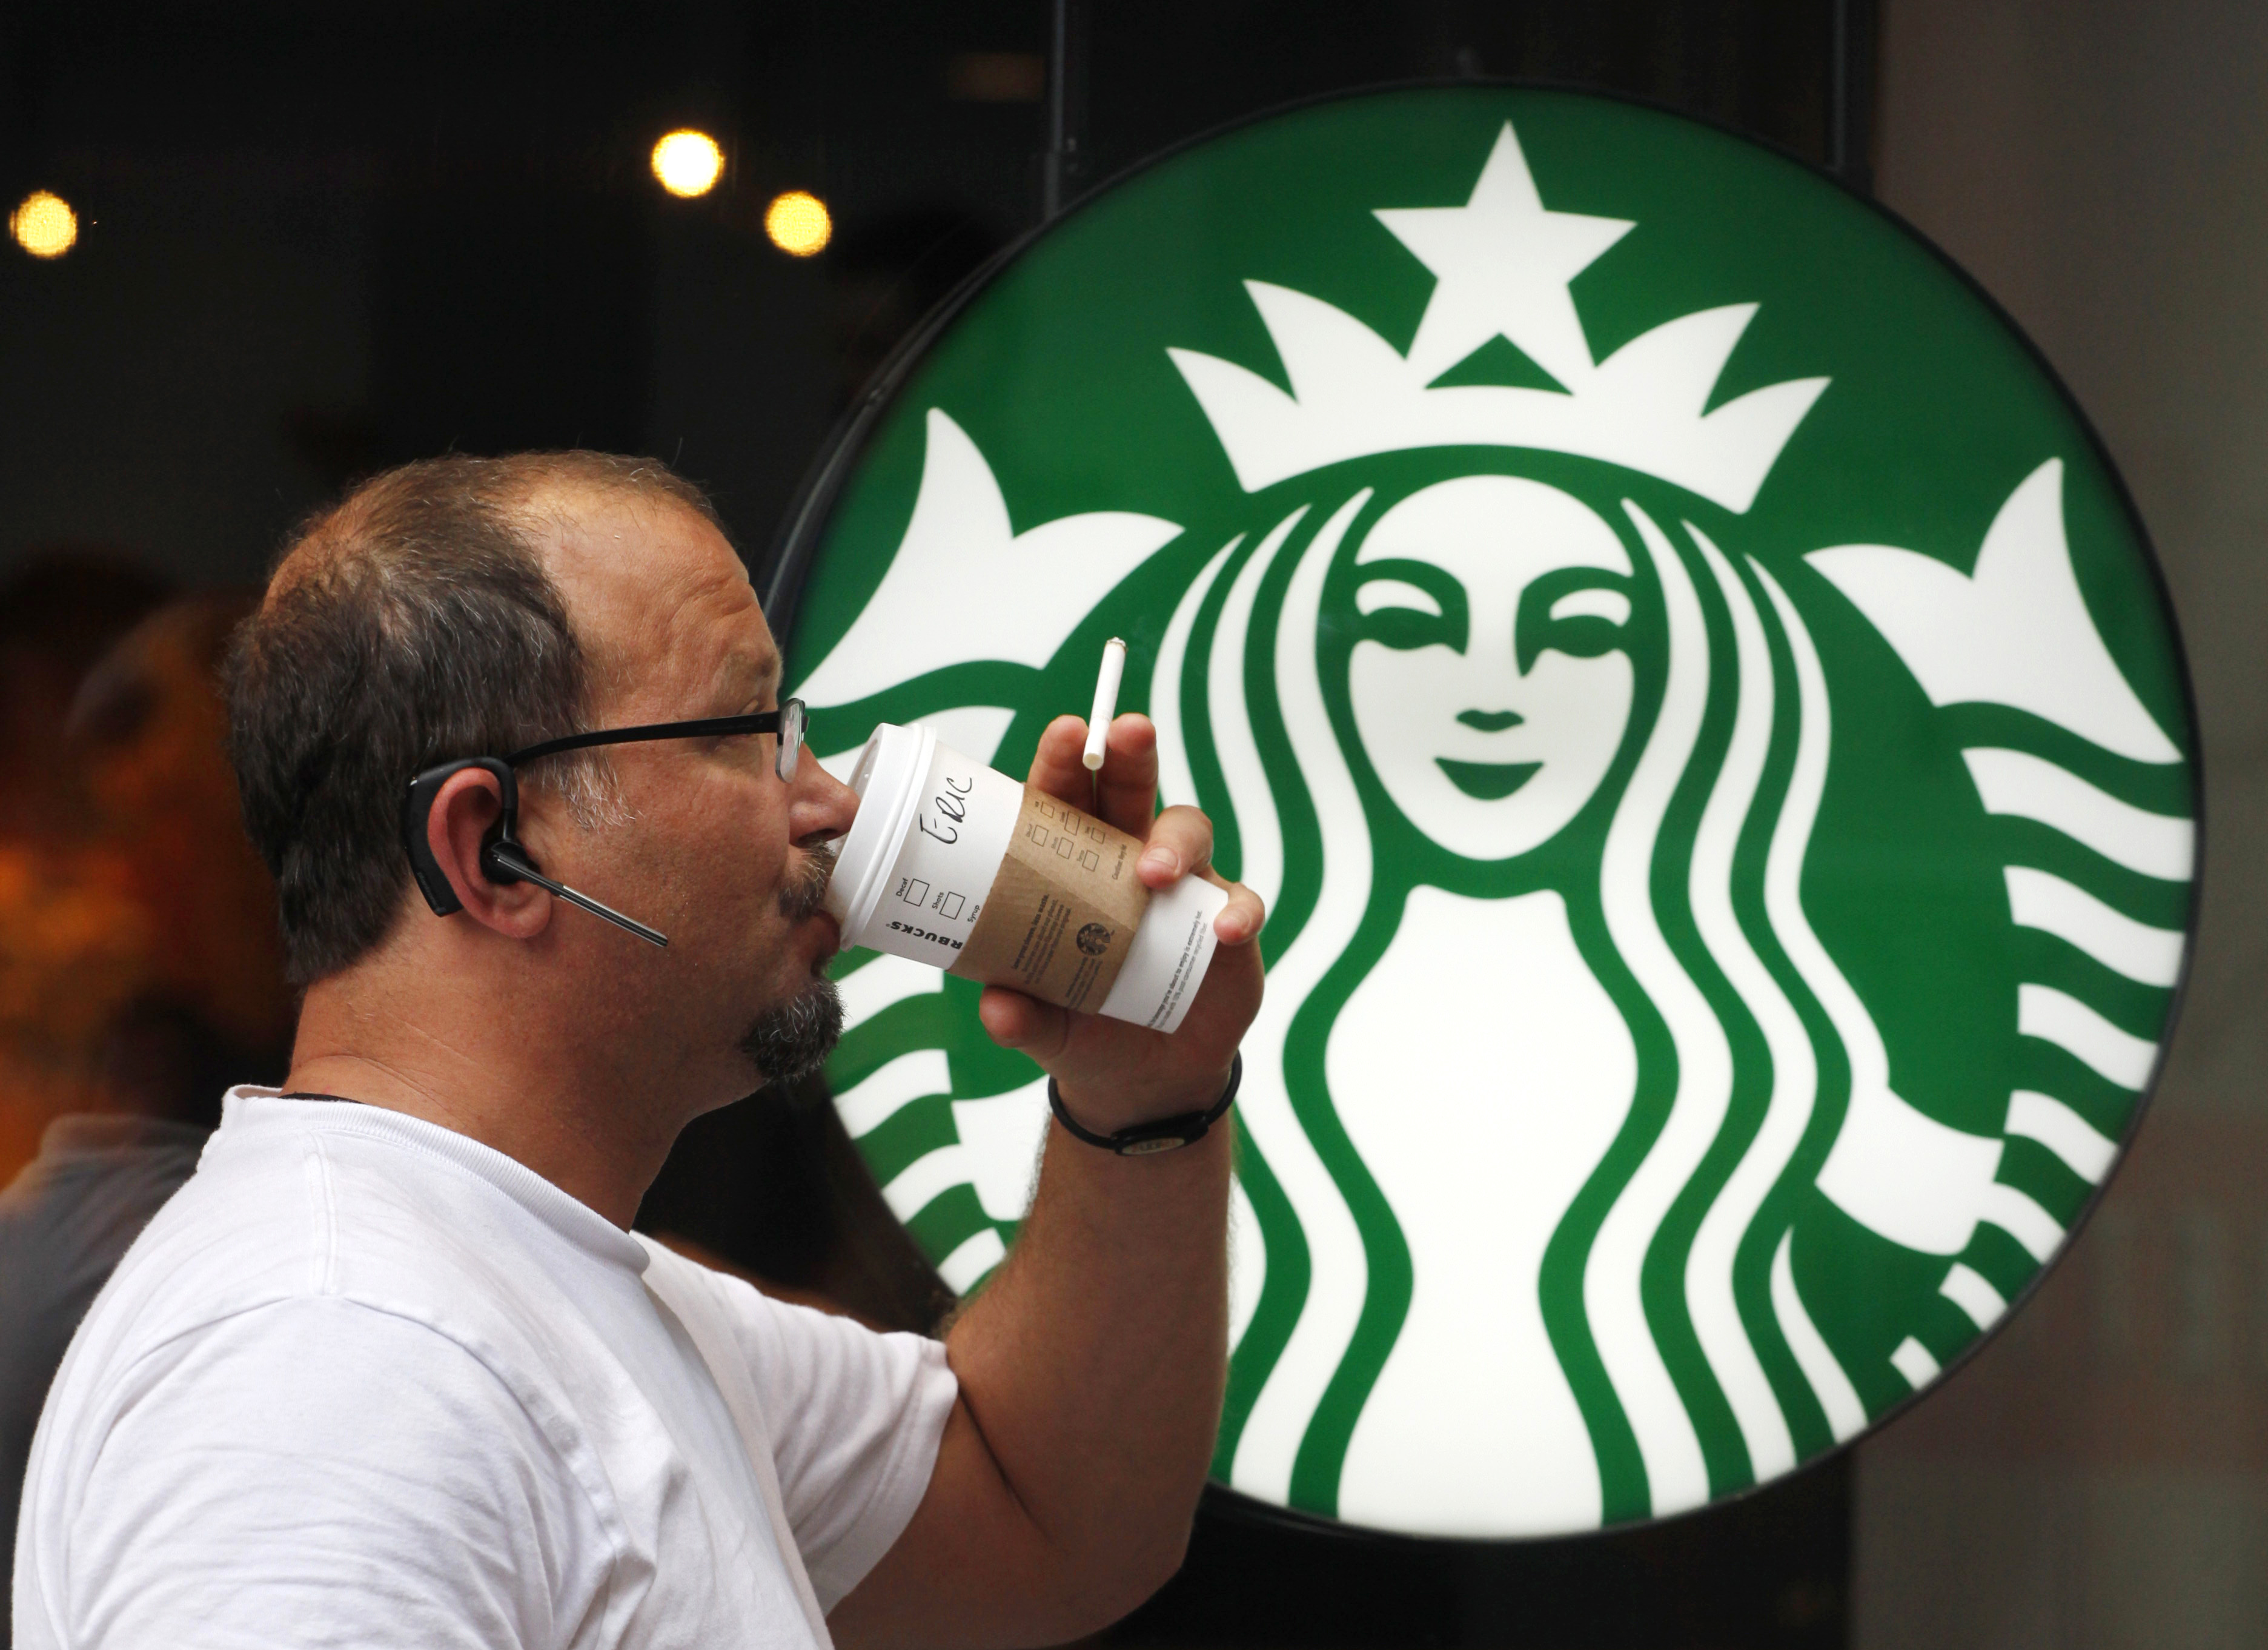 Local Starbucks stores push for alcohol sales in new program